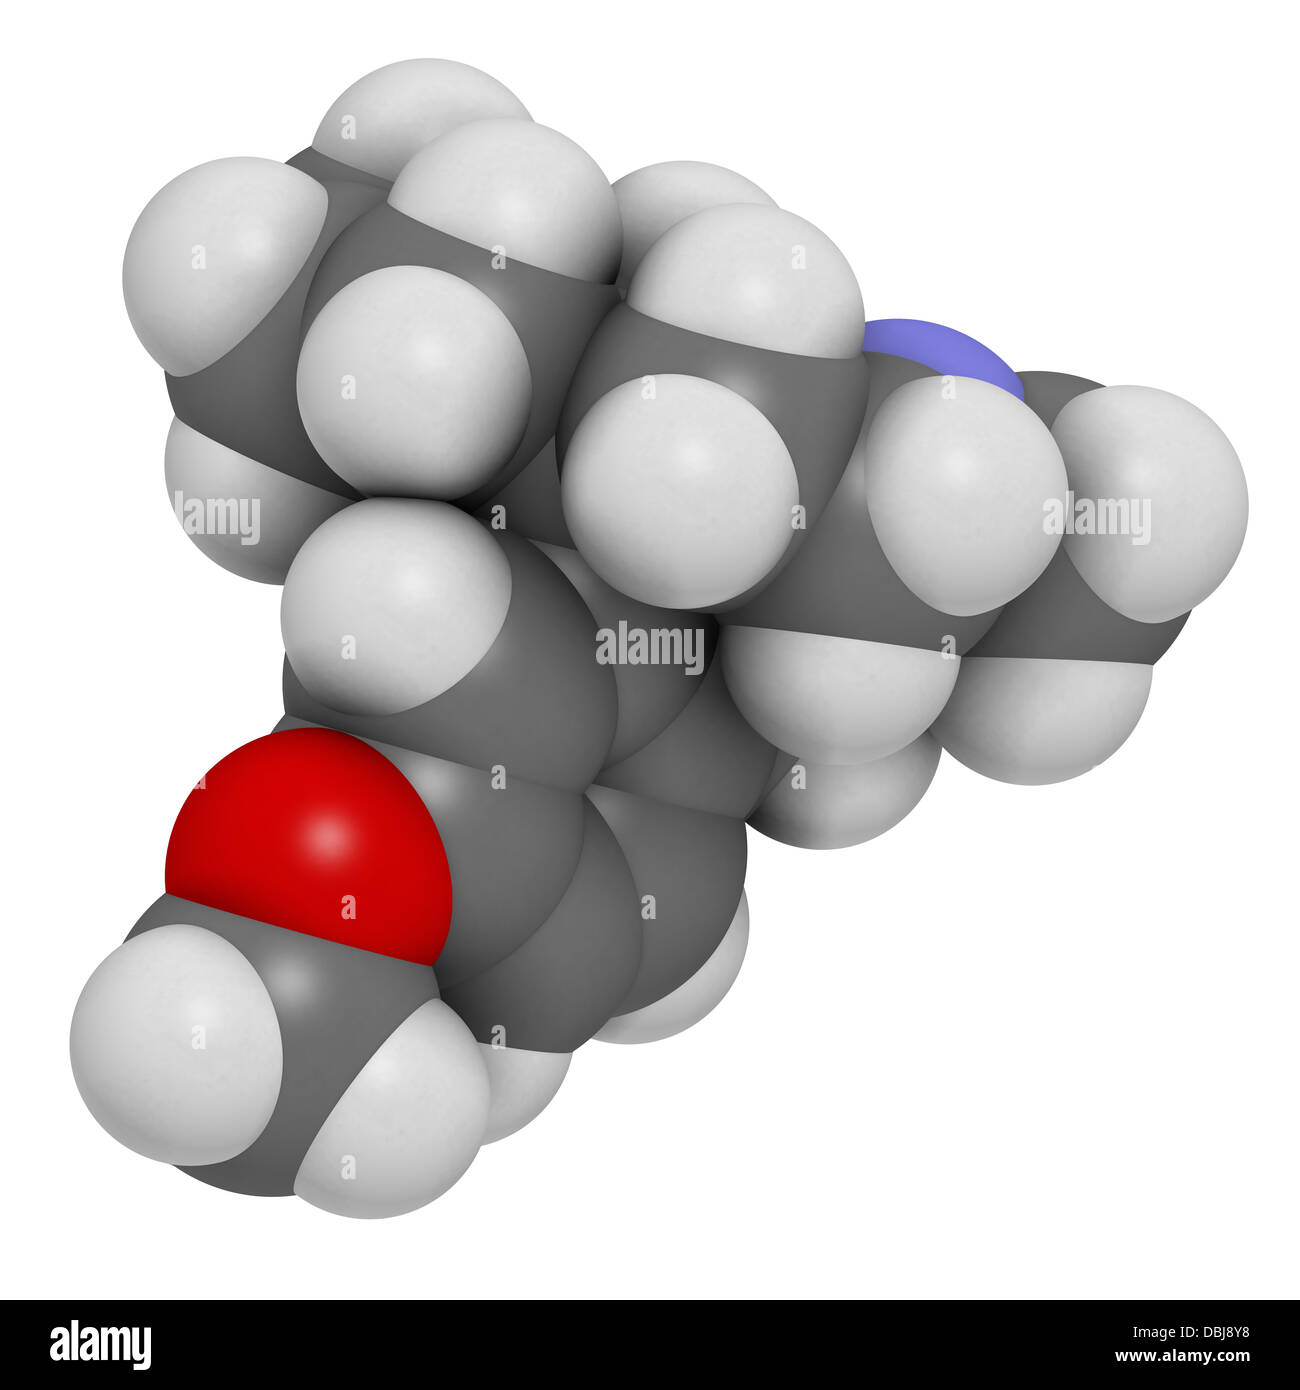 Dextromethorphan cough suppressant drug (antitussive), chemical structure. Atoms are represented as spheres. - Stock Image